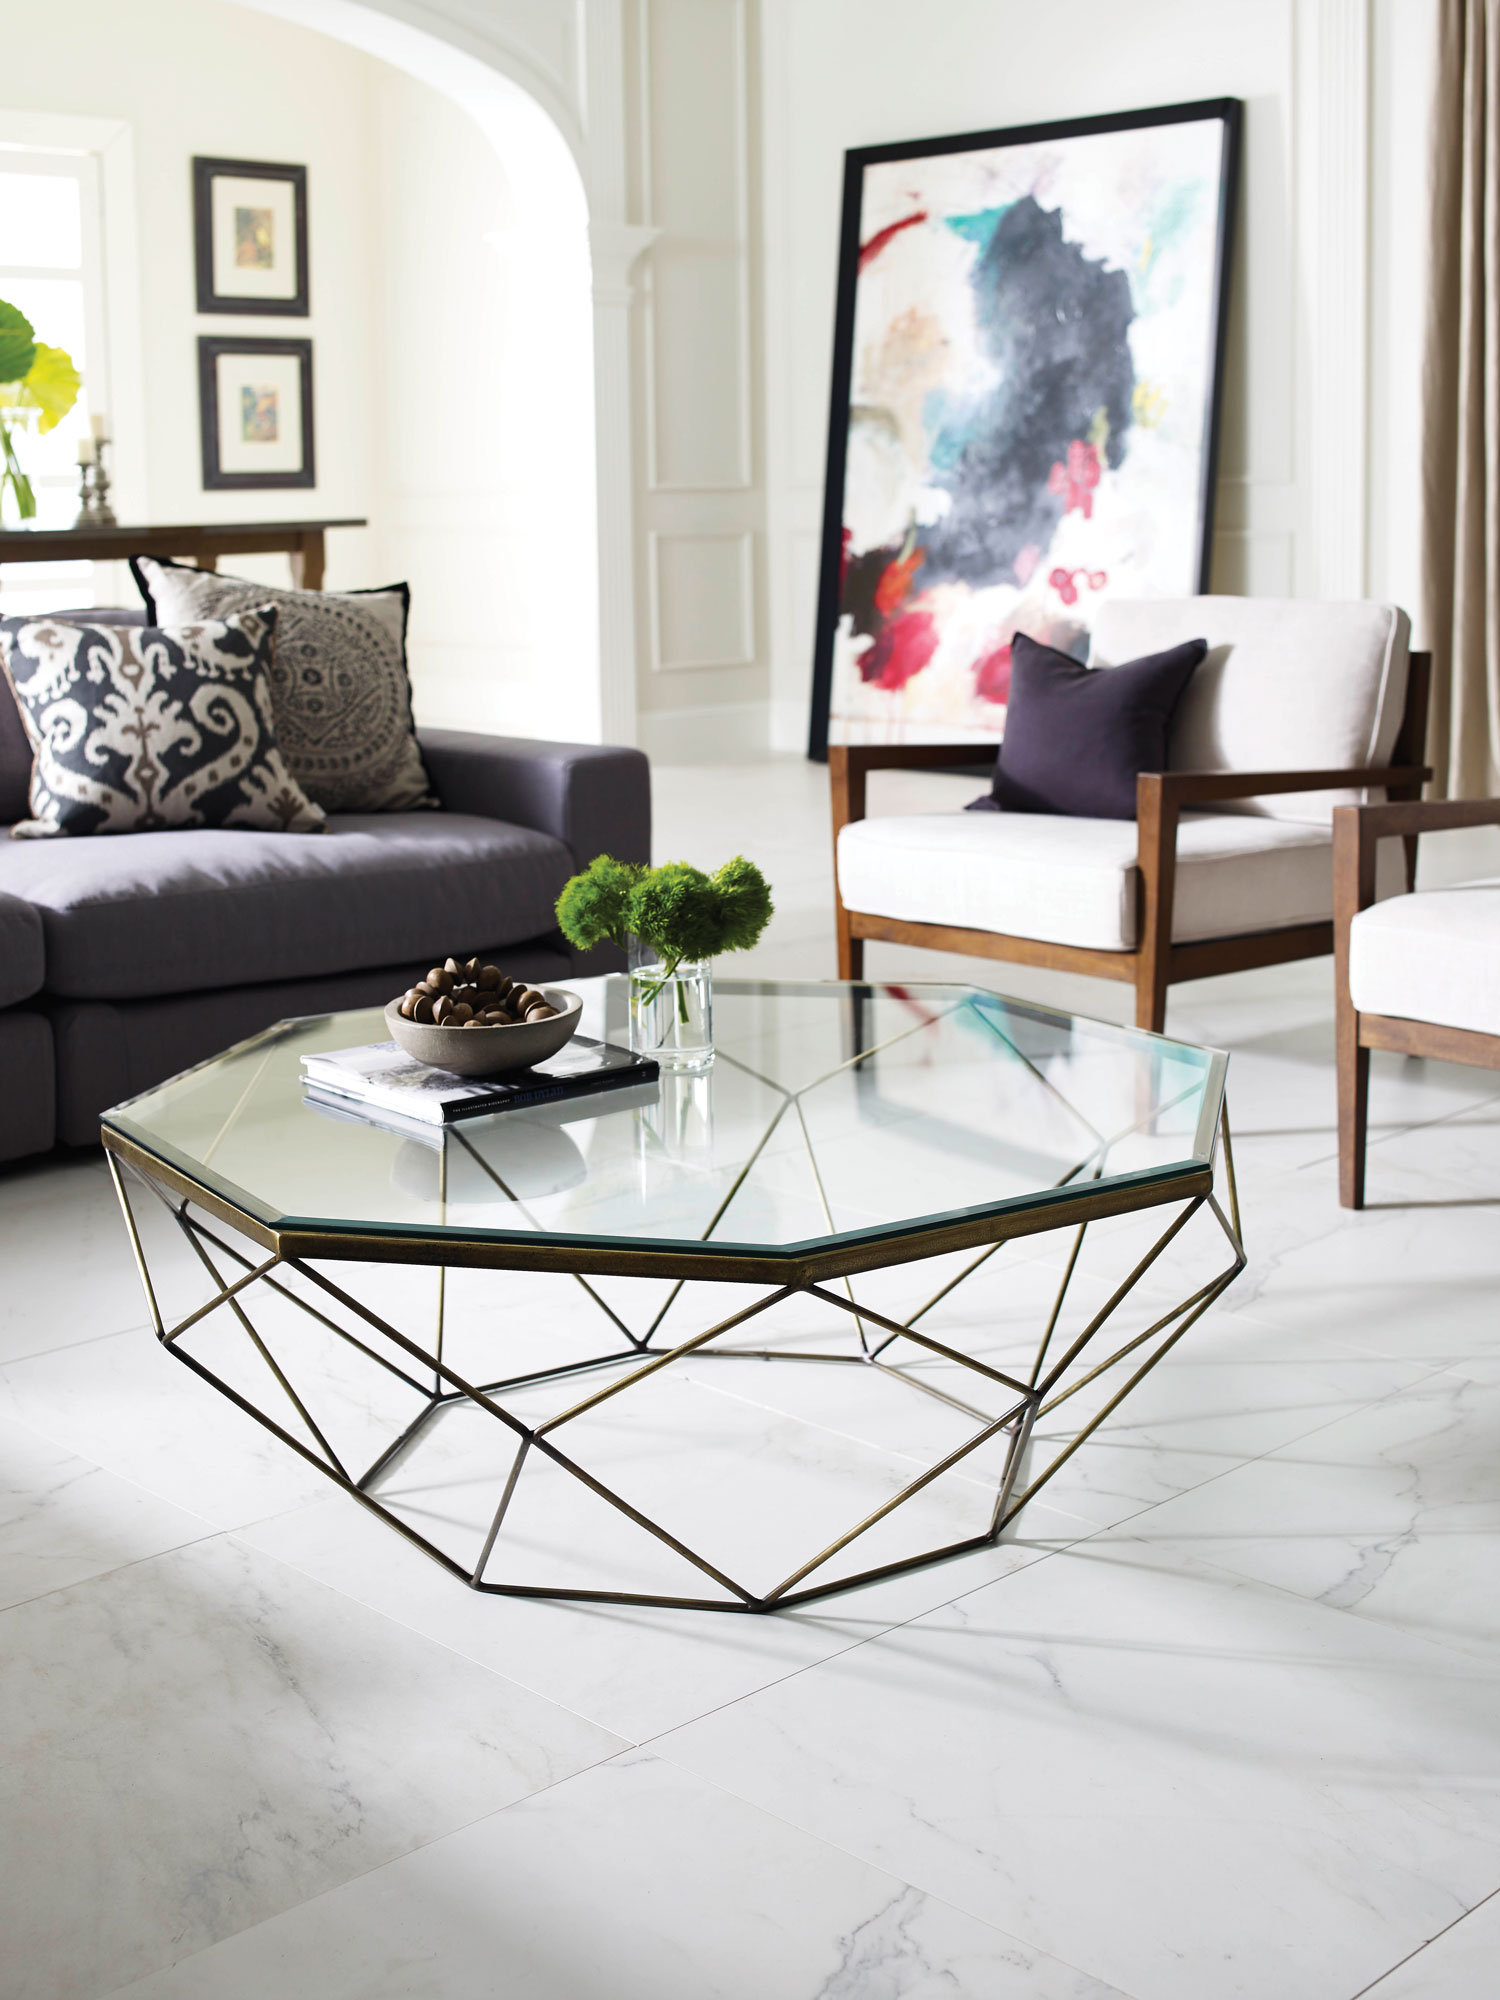 We Love Taking An Unanticipated Approach To Shape. Unique Geometric Lines  Entertain The Eye And Give A Room Depth. Featured: Geometric Coffee Table